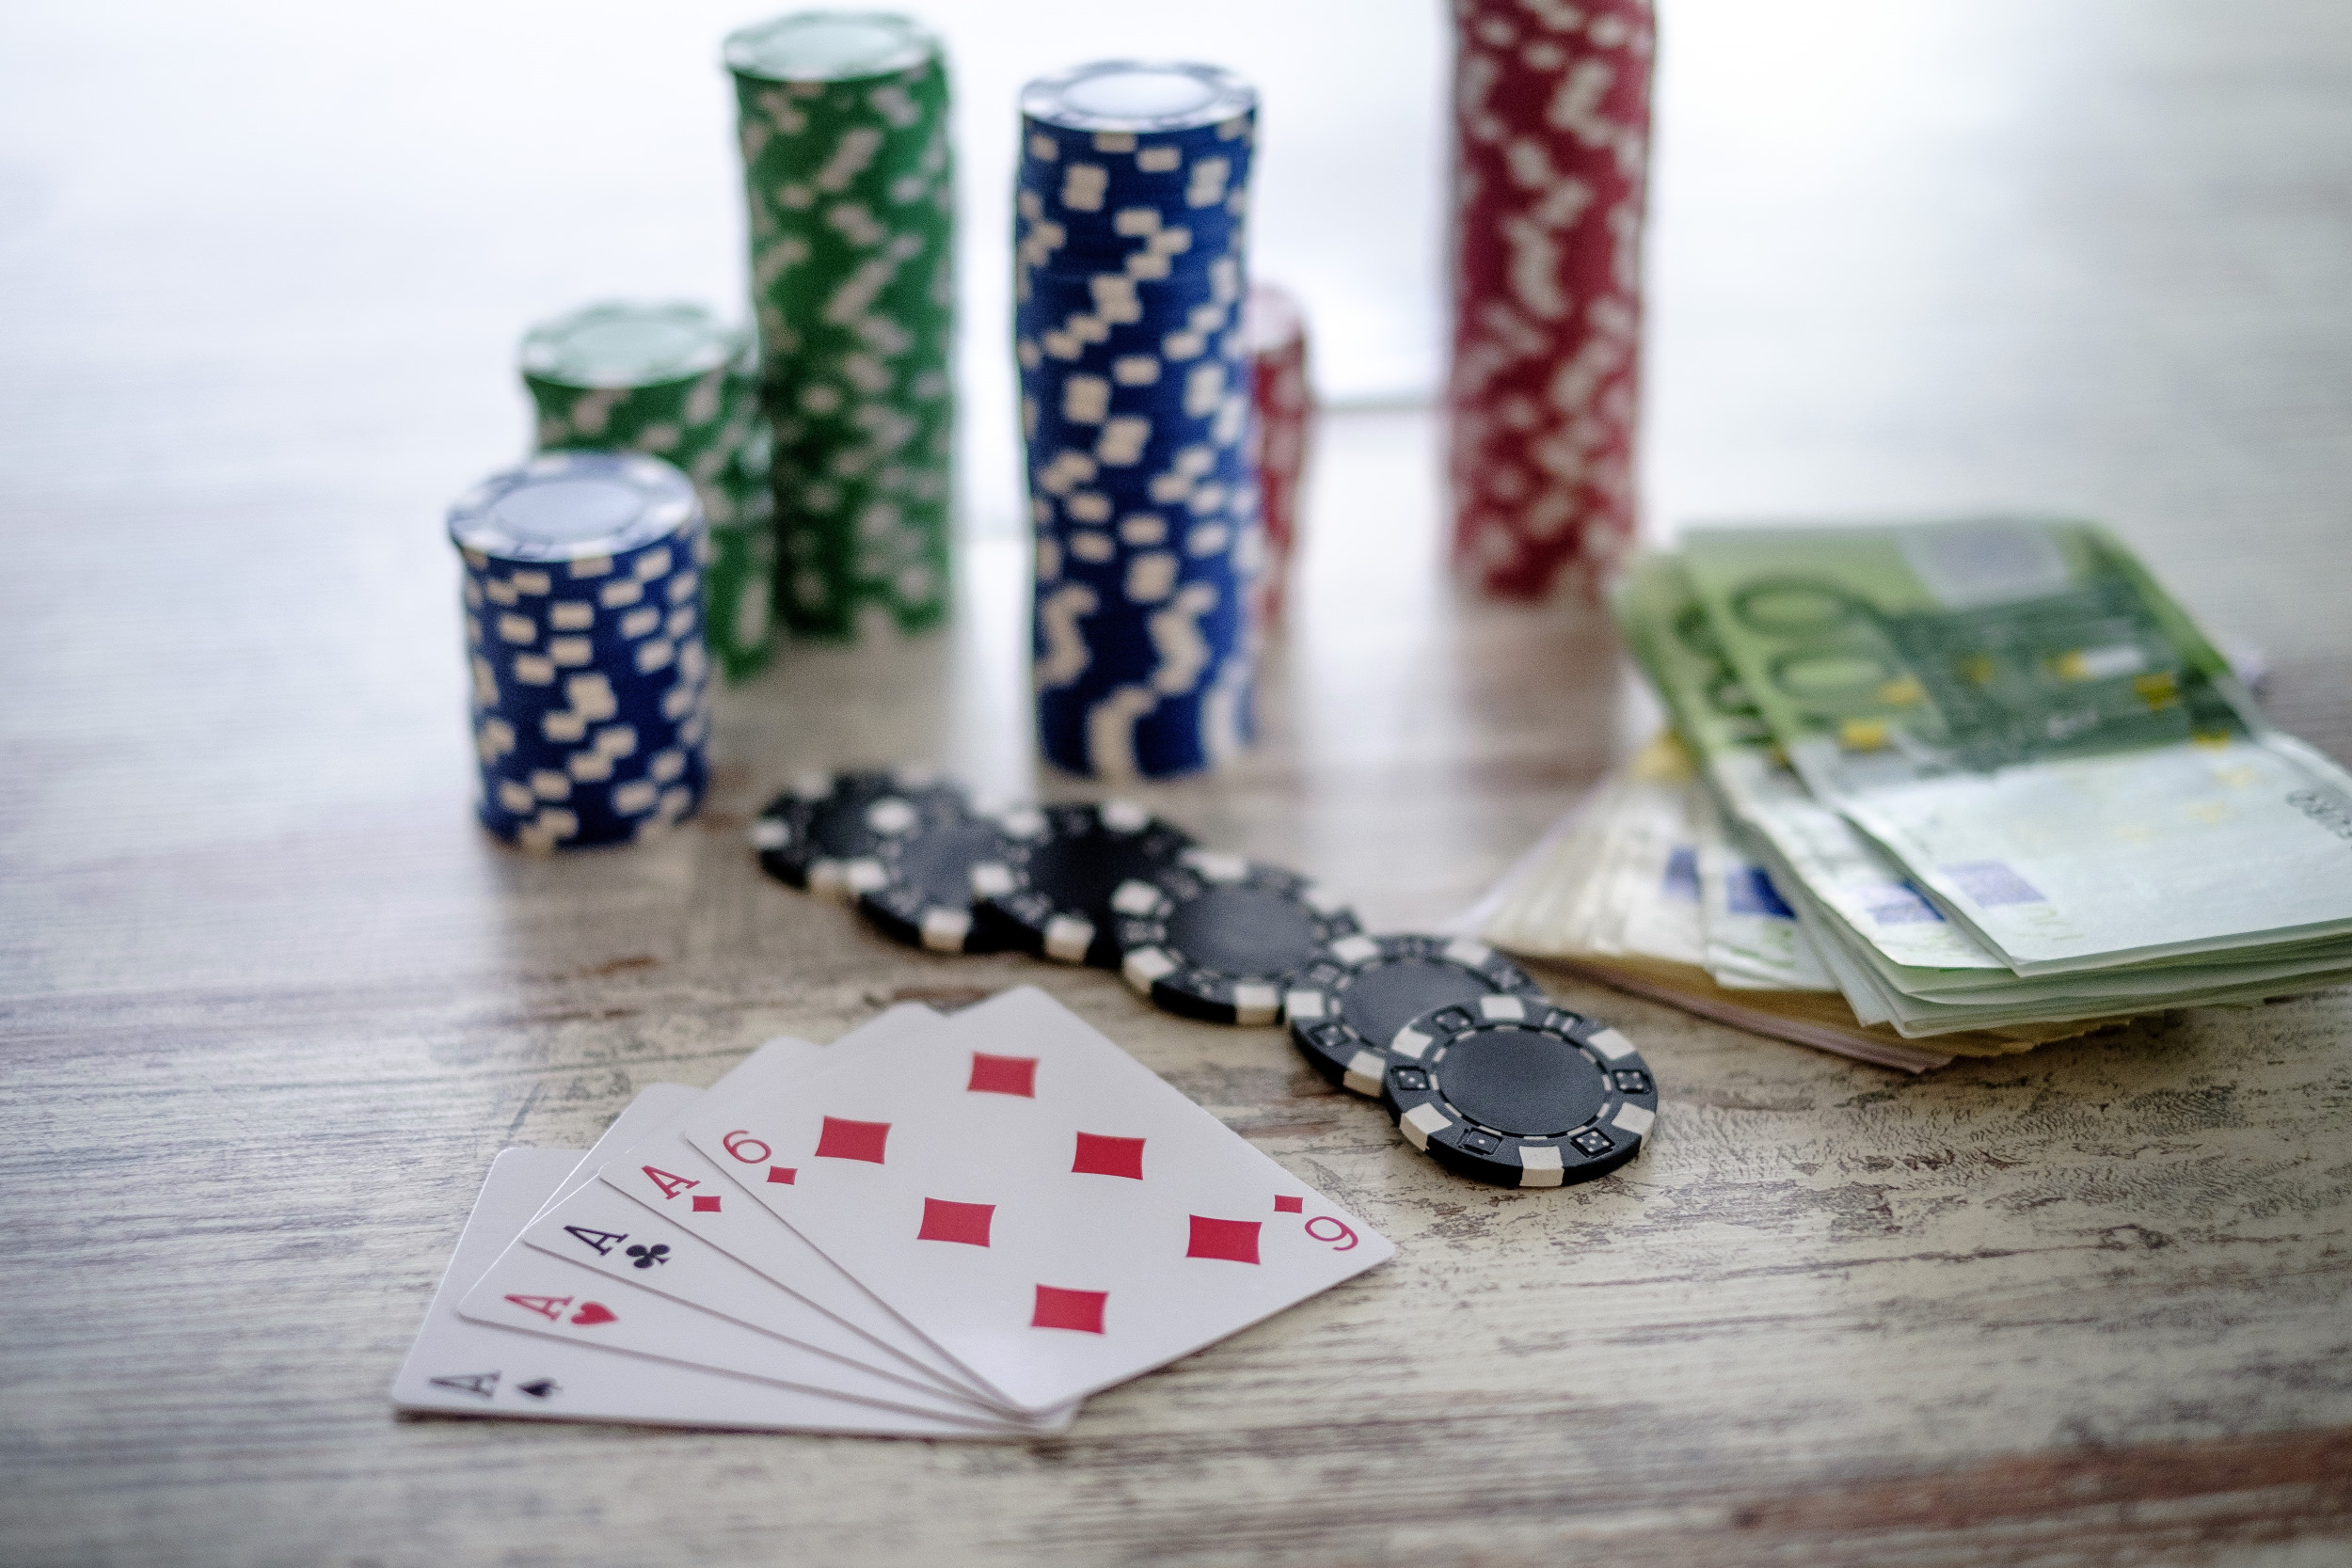 geld, money, poker, gokken, gamble, gokspel, fiches, euro, kaarten, four of a kind